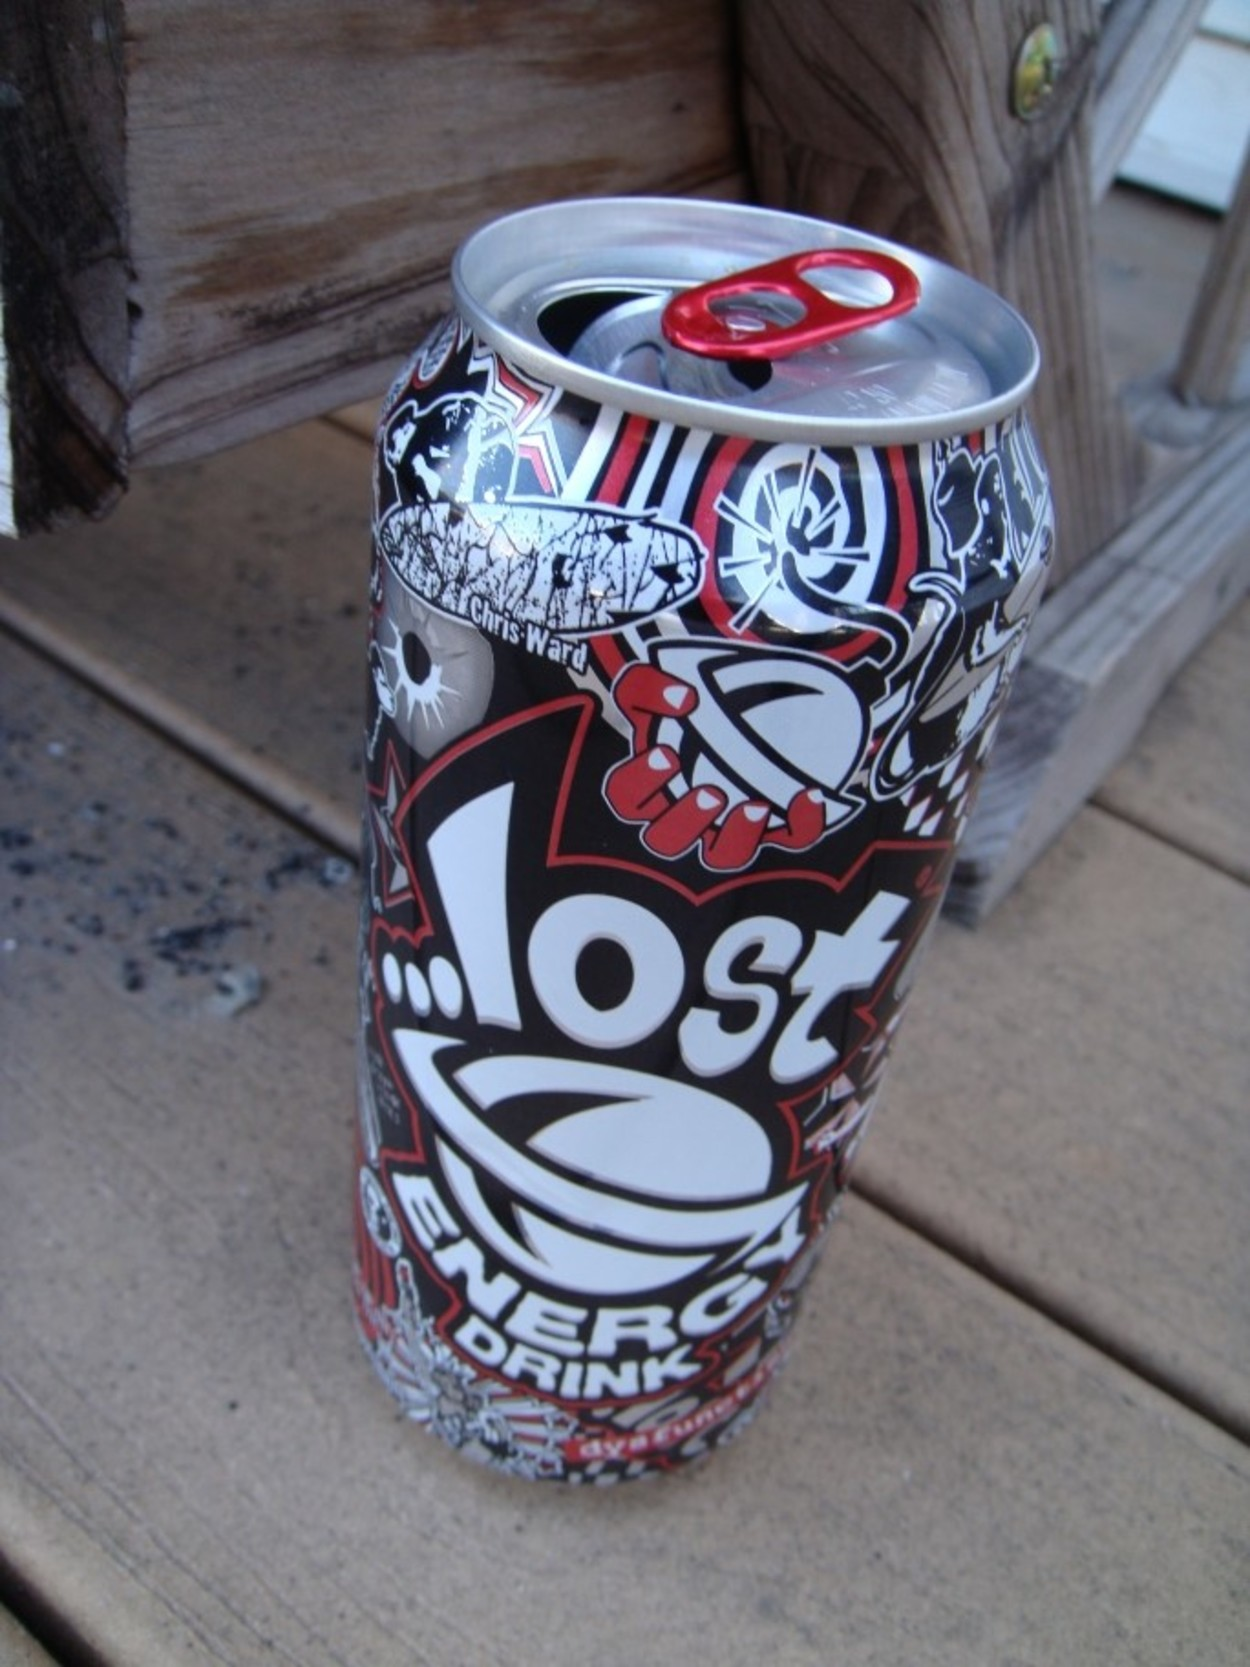 Do They Still Make Lost Energy Drink? (Deep Dive)